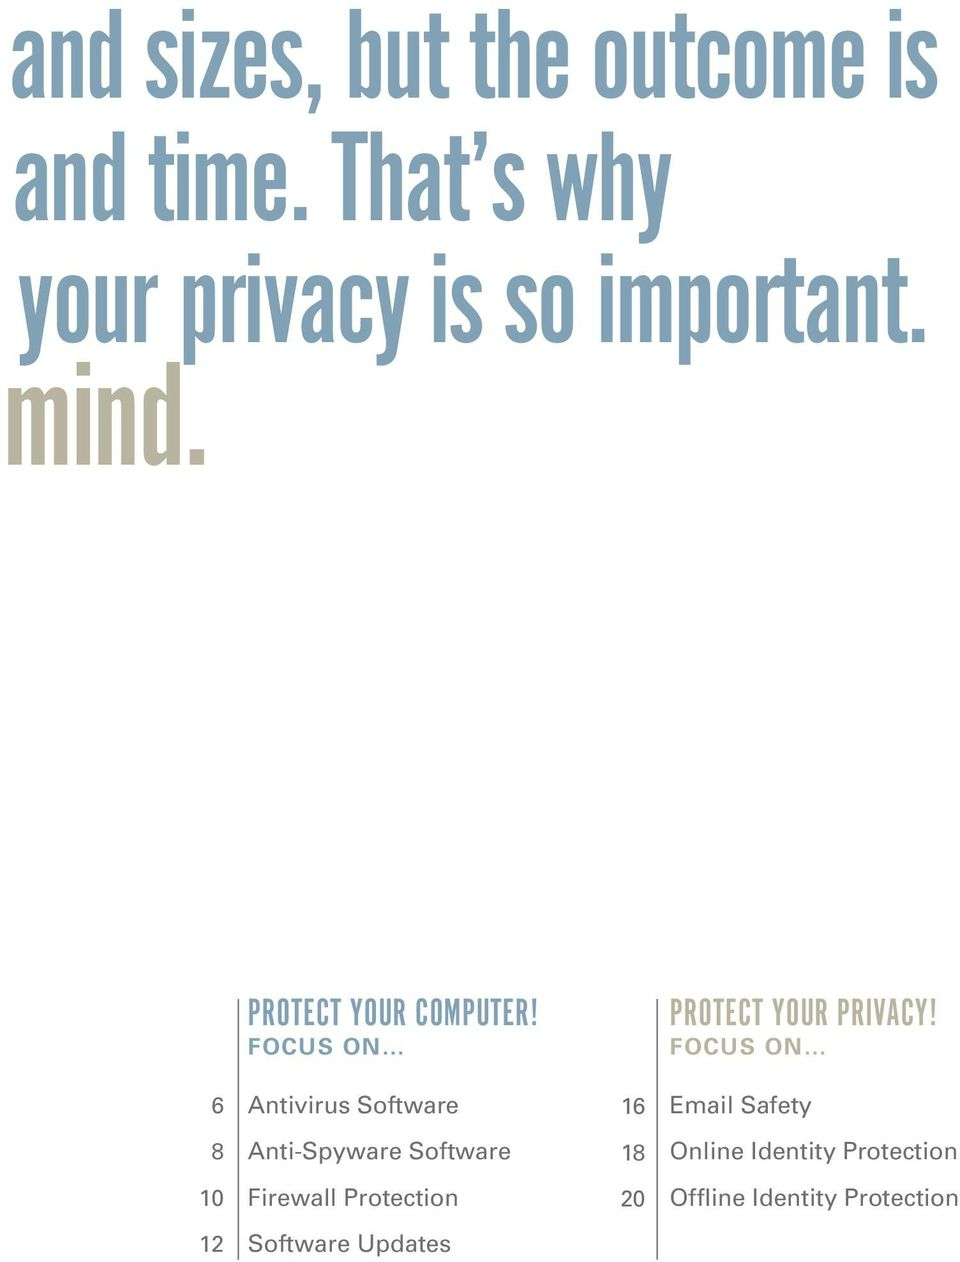 FOCUS ON PROTECT YOUR PRIVACY!